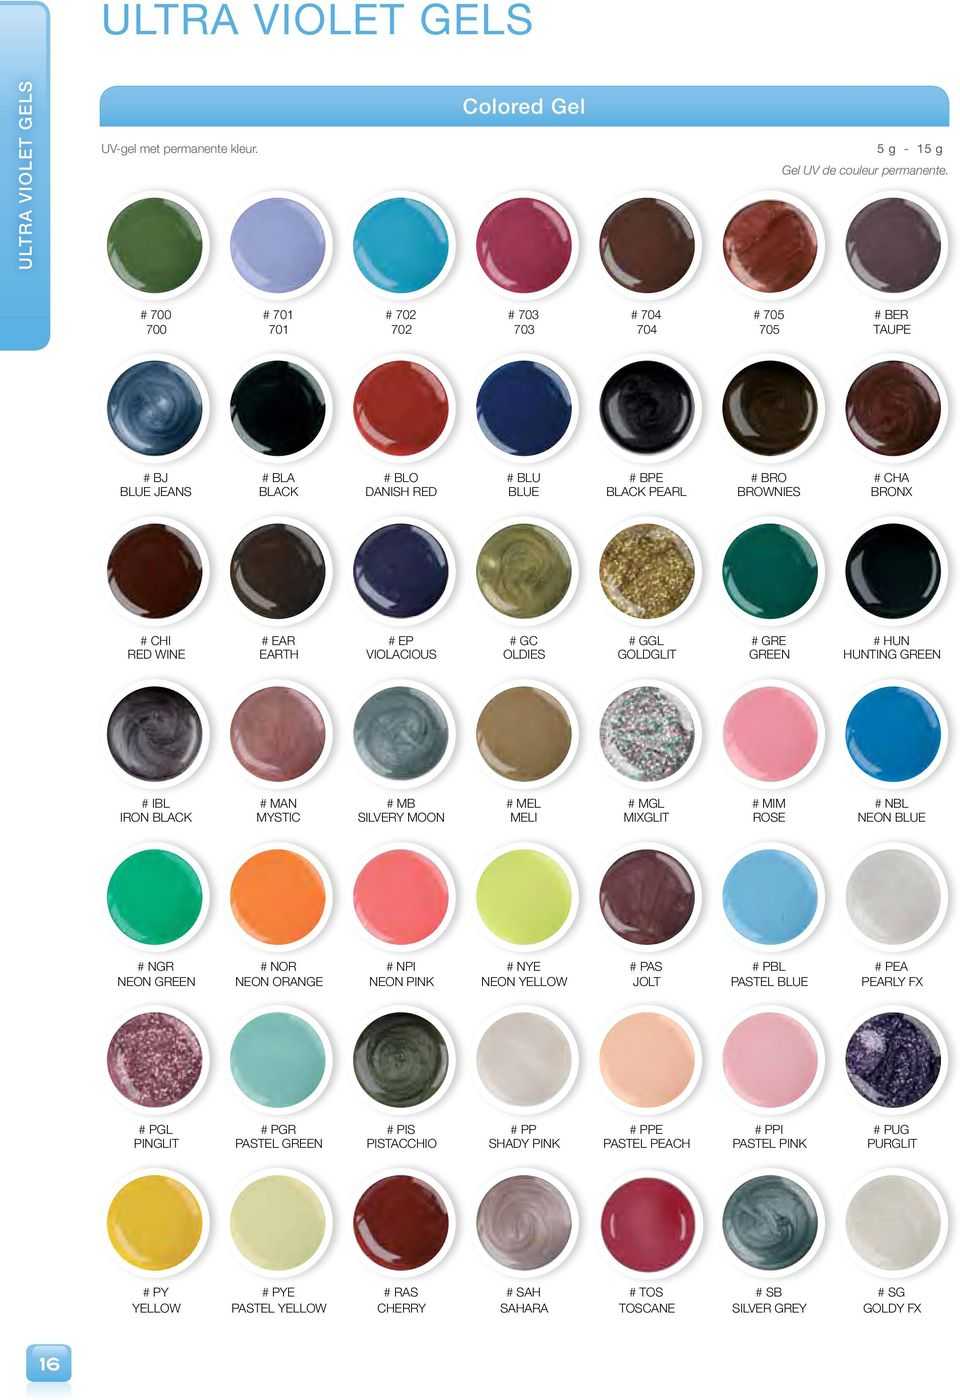 ggl # gre # hun RED WINE EARTH VIOLACIOUS OLDIES GOLDGLIT GREEN HUNTING GREEN # ibl # man # mb # mel # mgl # mim # nbl IRON BLACK MYSTIC SILVERY MOON MELI MIXGLIT ROSE NEON BLUE # ngr # nor # npi #